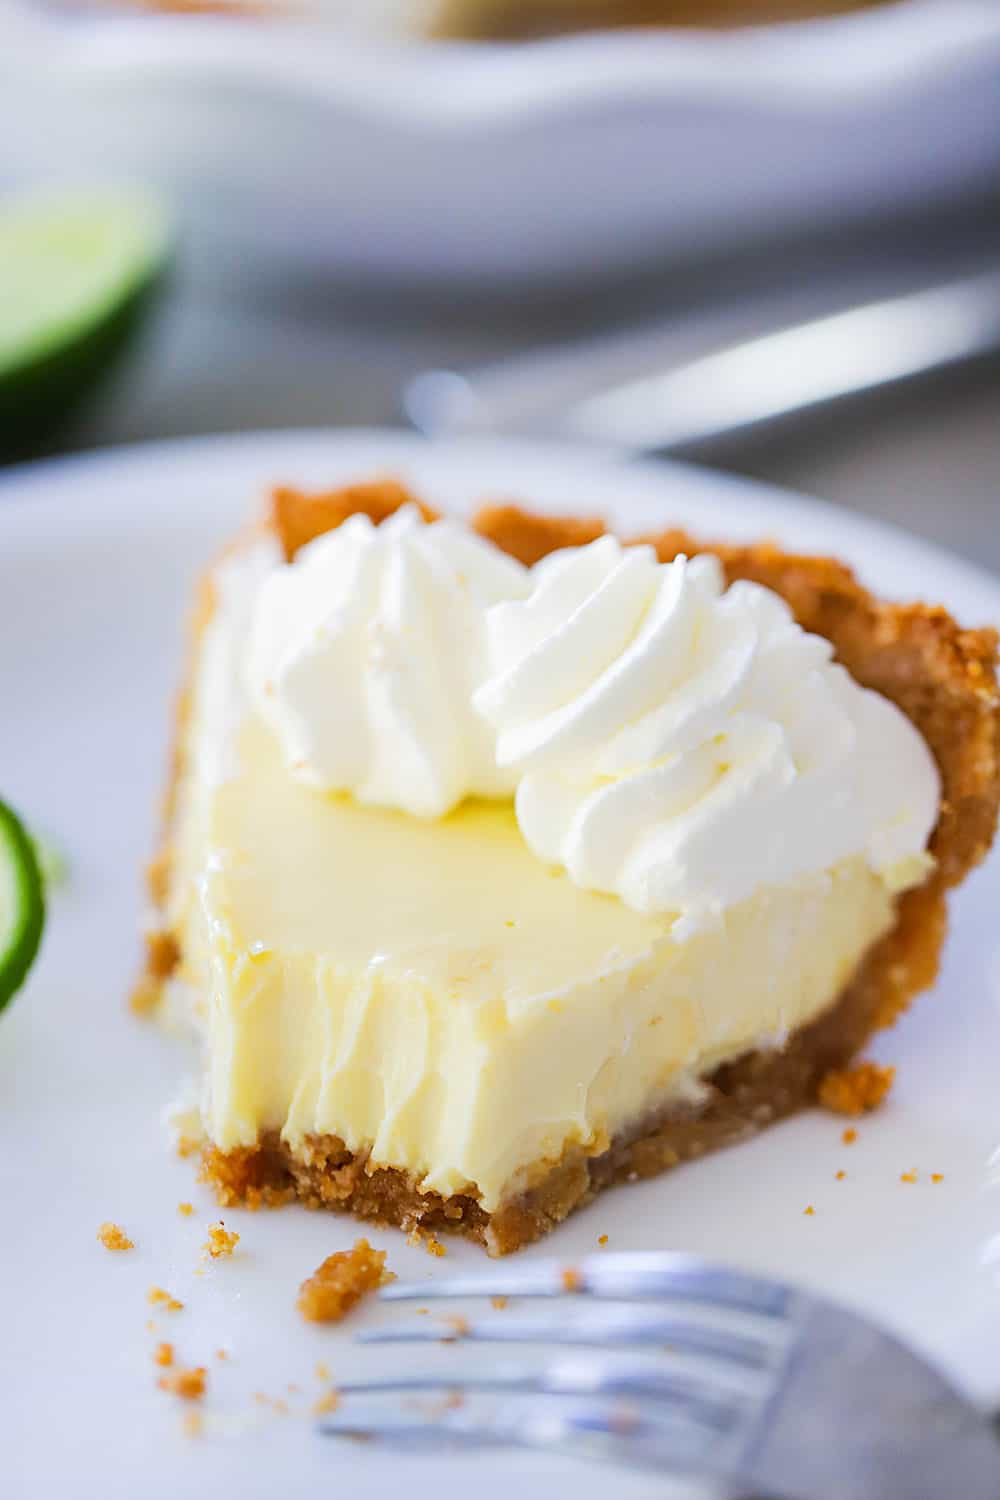 A close-up view of a slice of key lime pie on a plate with a bite taken out of it.